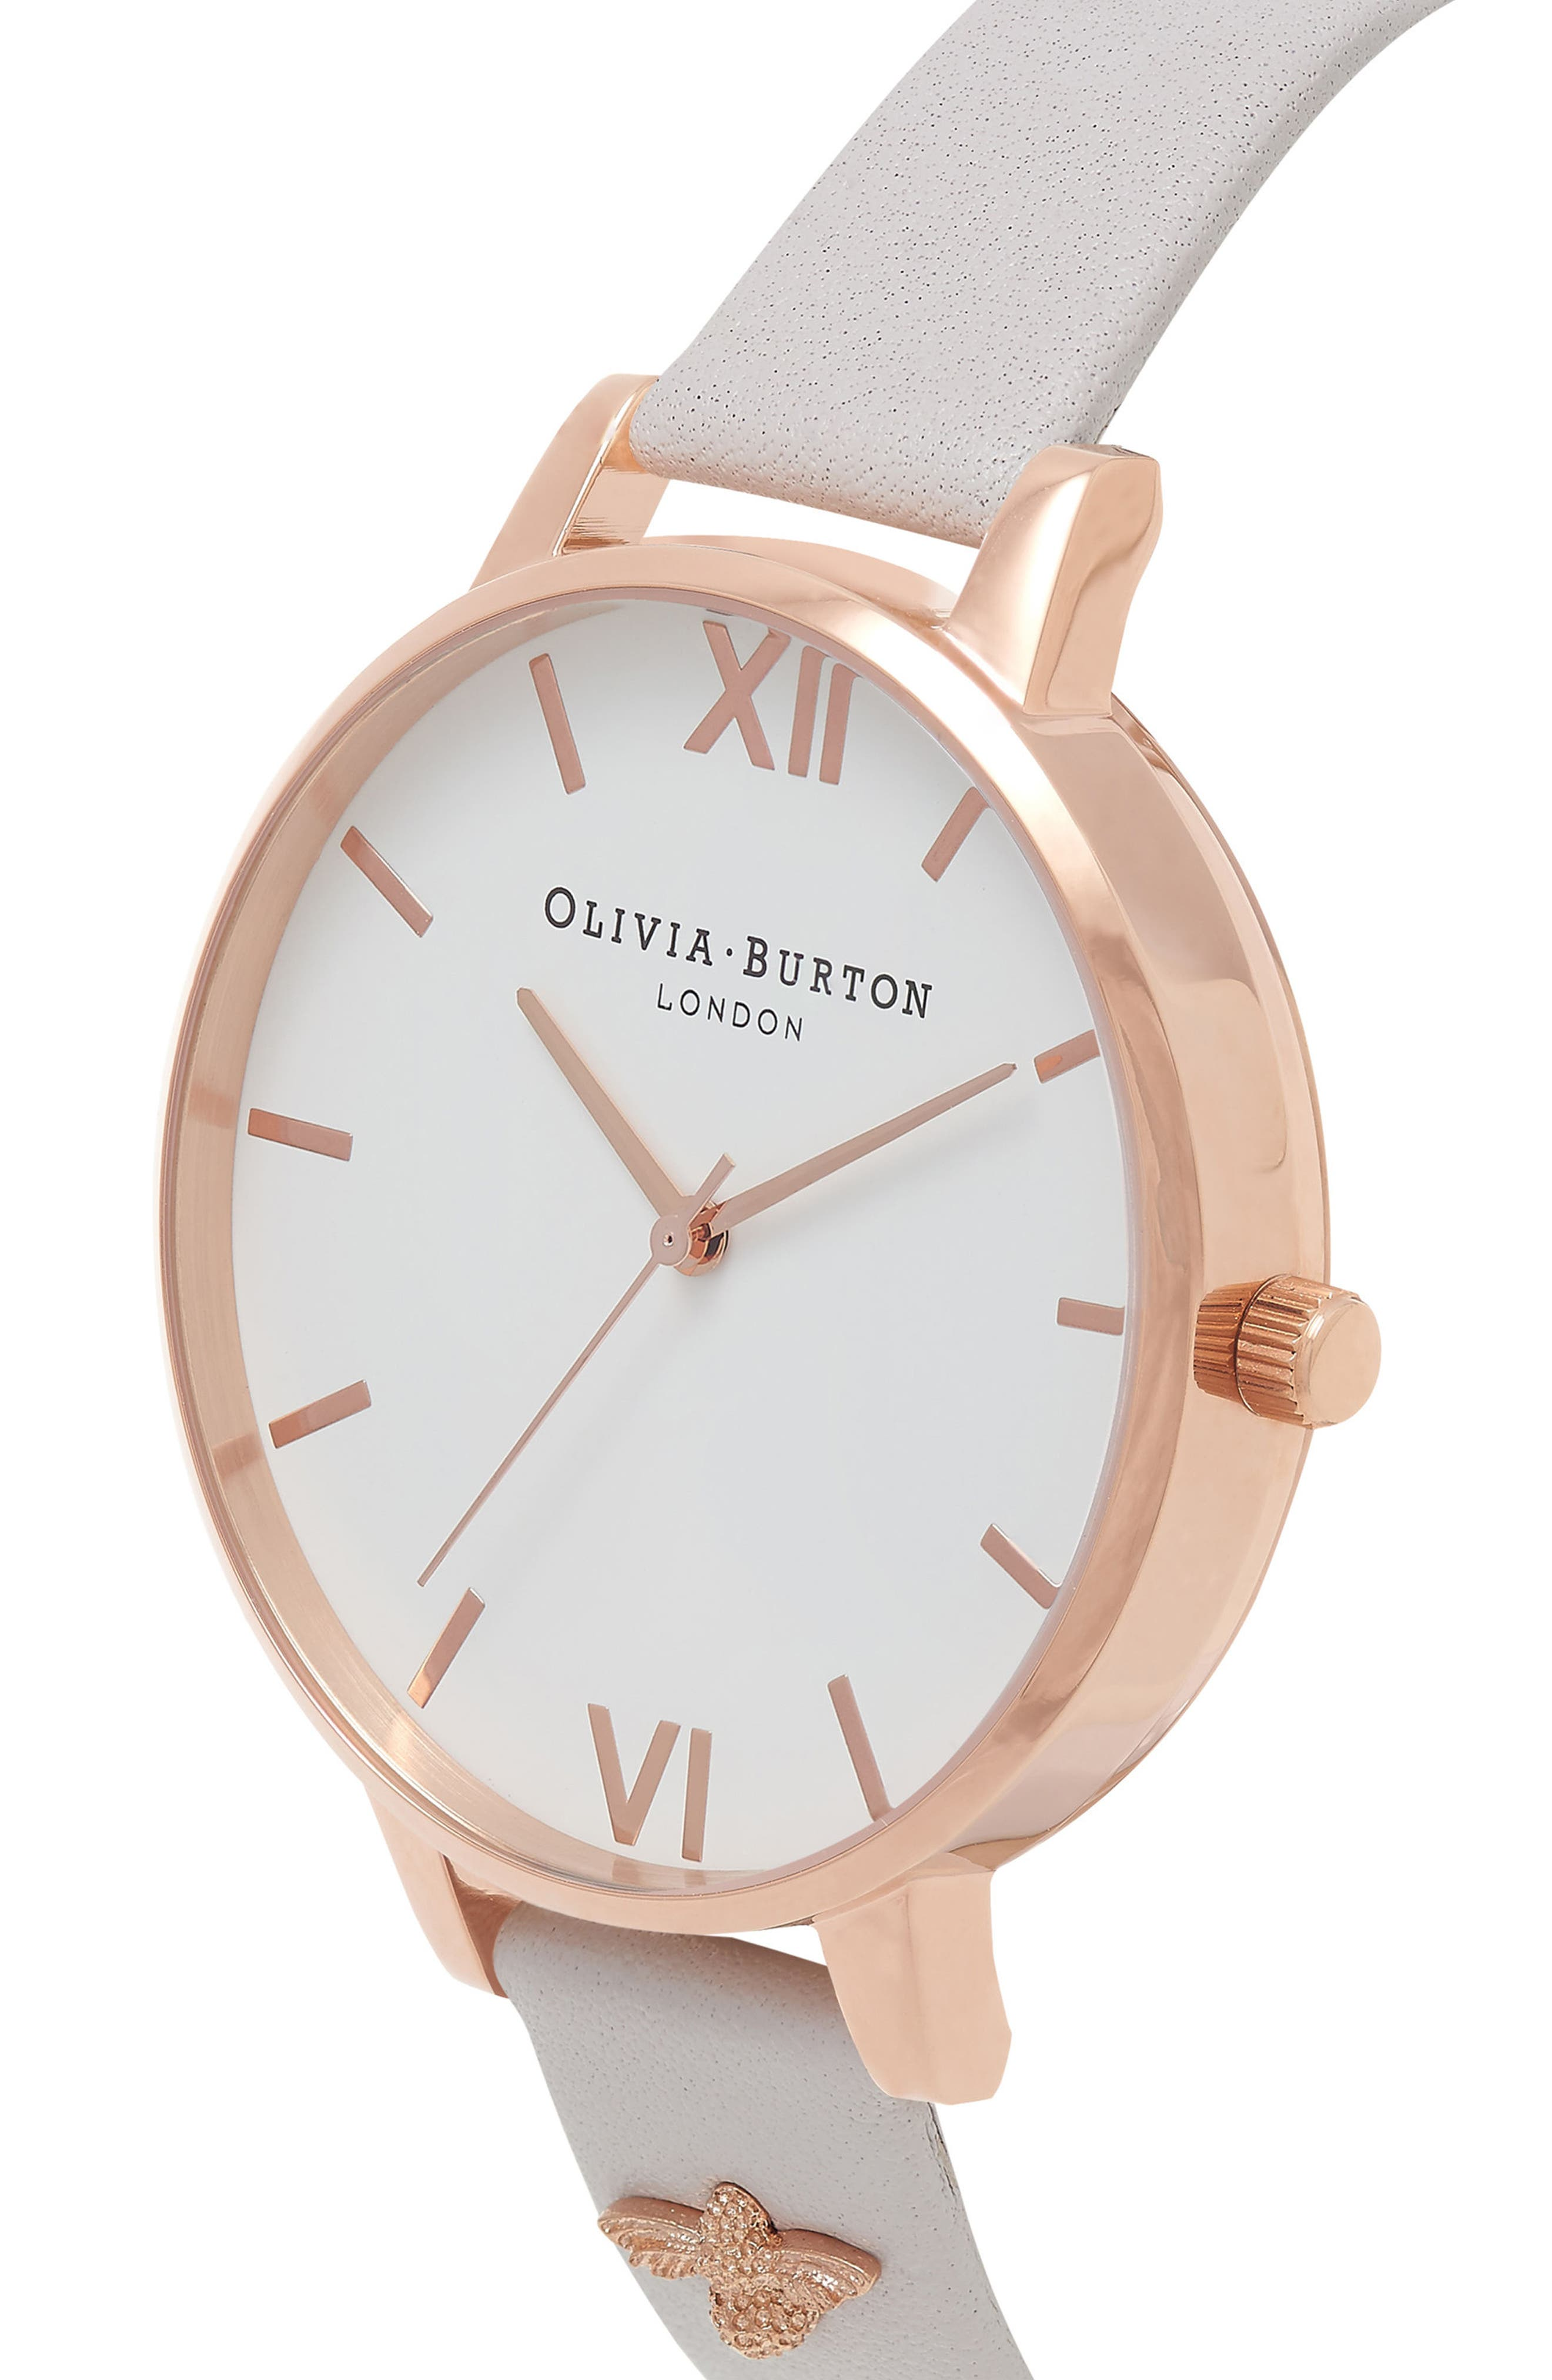 3D Bee Leather Strap Watch, 38mm,                             Alternate thumbnail 5, color,                             BLUSH/ WHITE/ ROSE GOLD